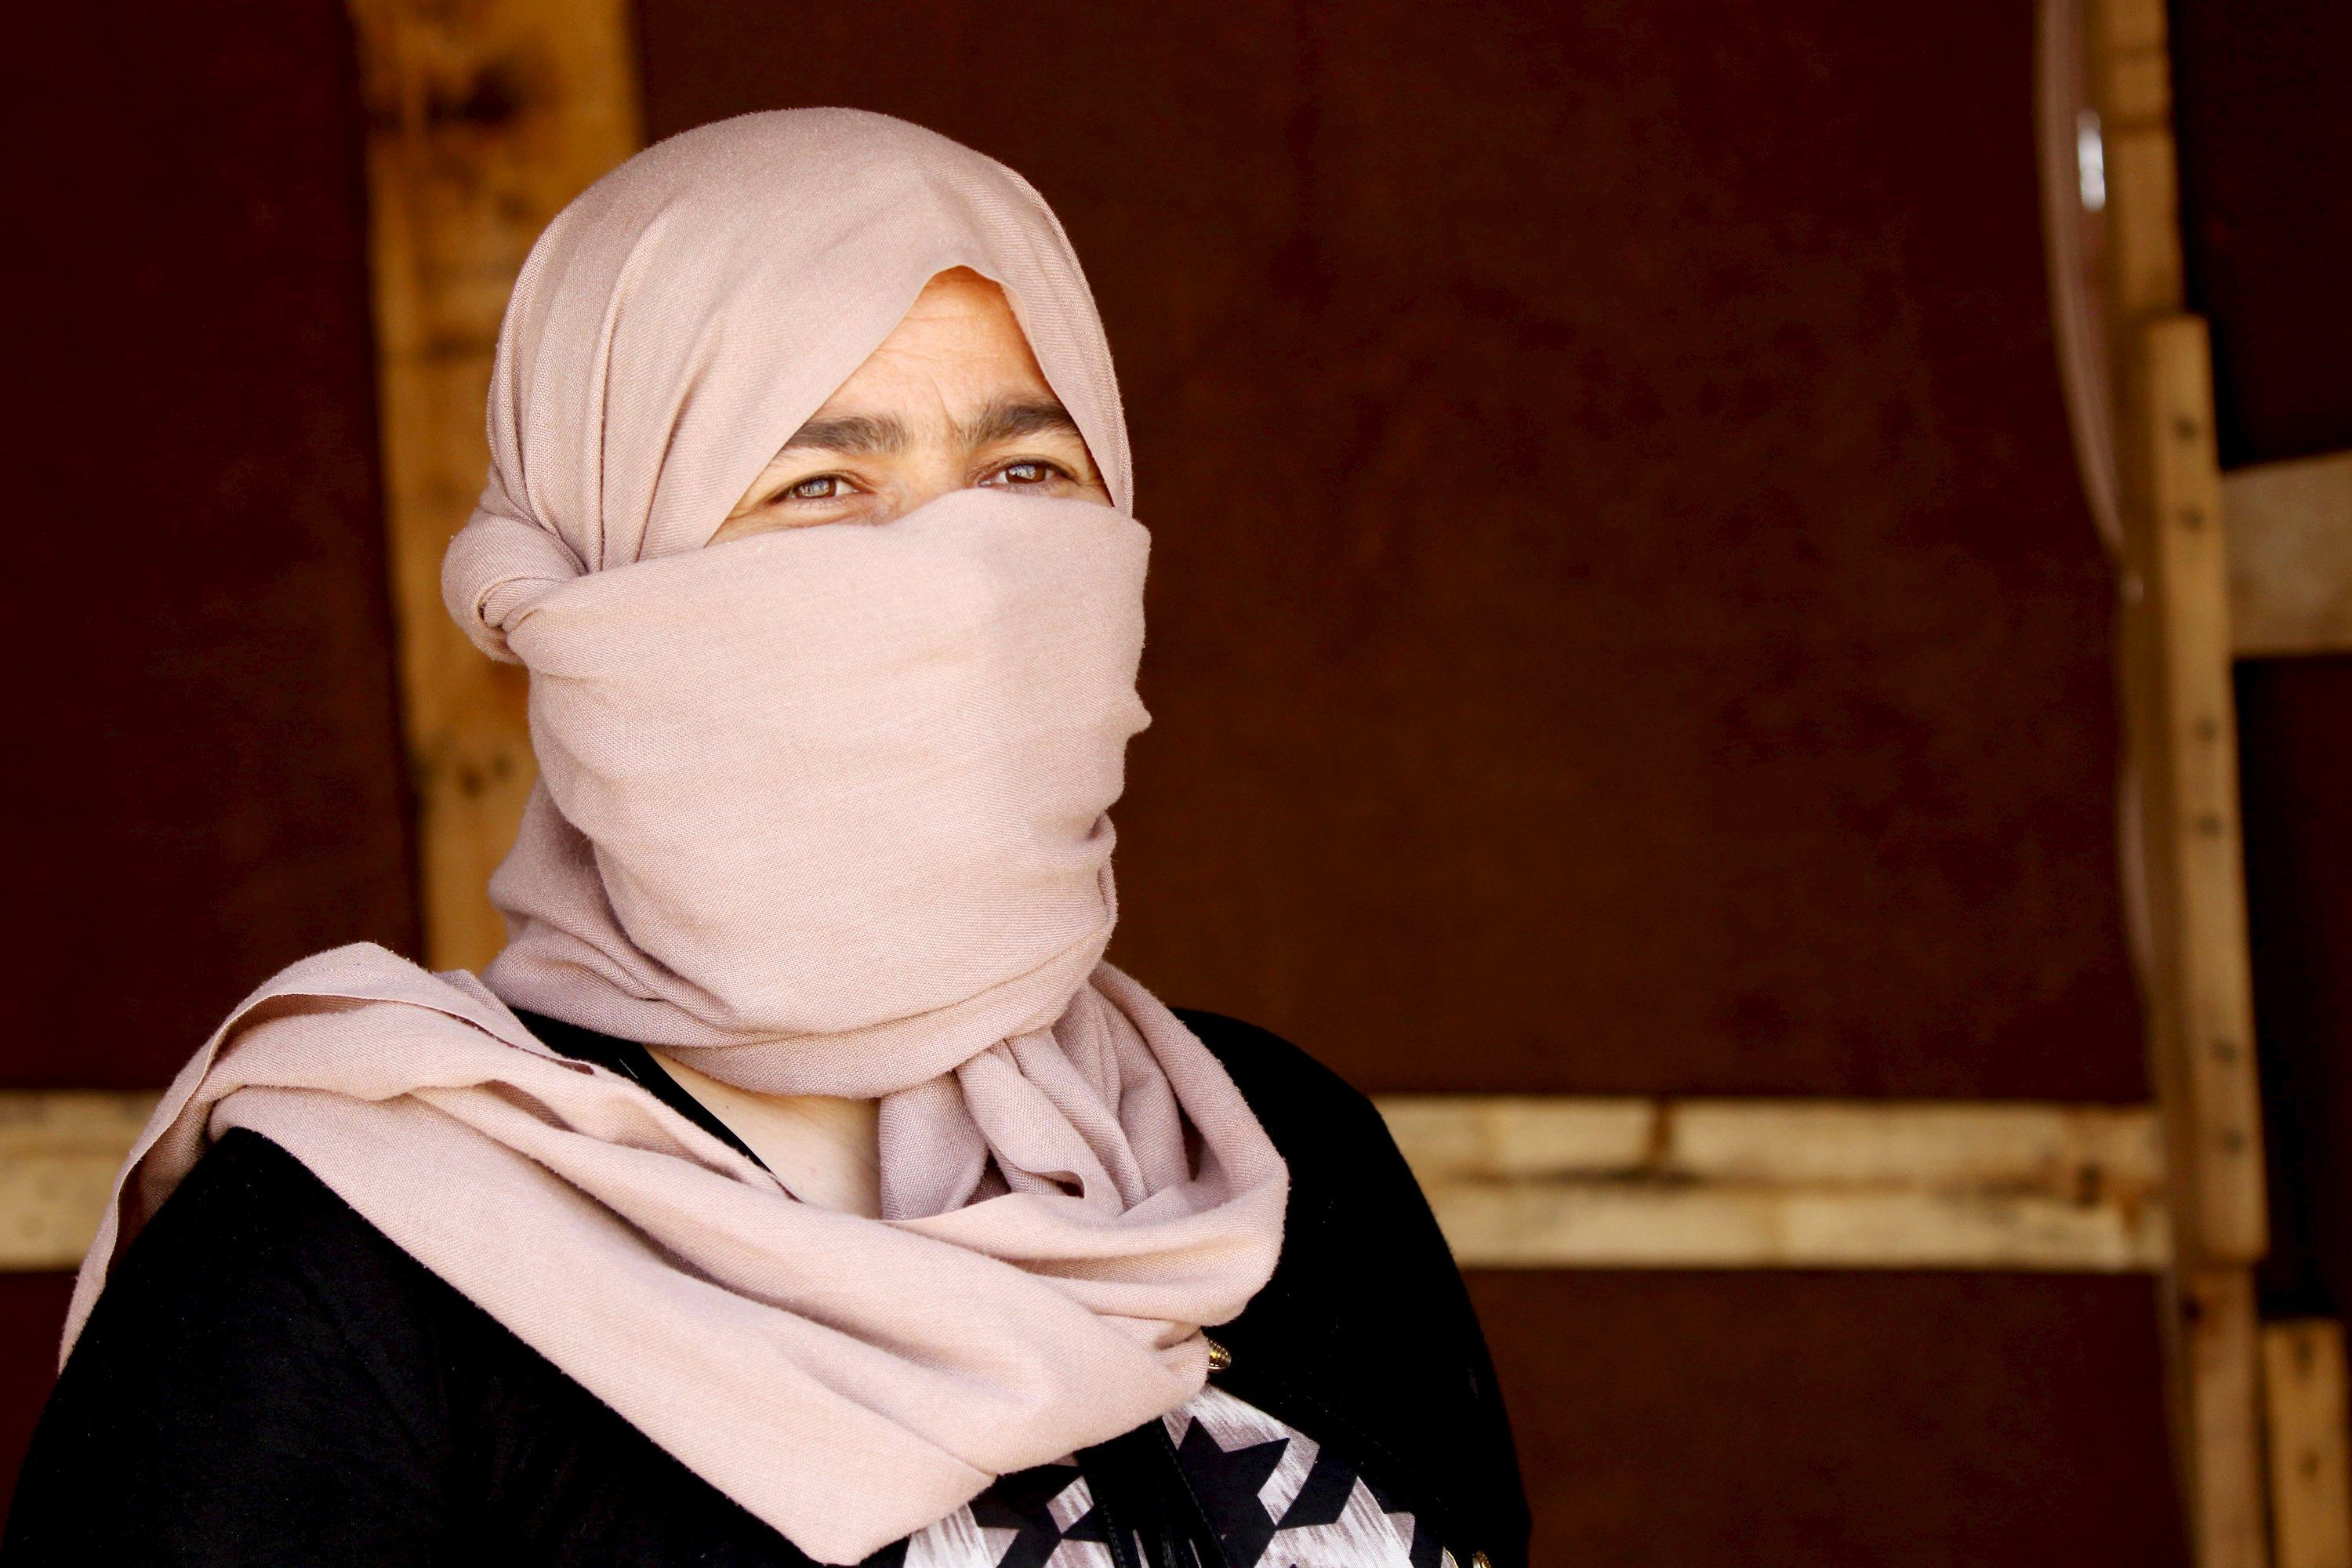 A 27-year-old Yazidi woman, who escaped from captivity by Islamic State (IS) militants, is pictured at Sharya refugee camp on the outskirts of Duhok province July 4, 2015. The woman and her sister were among one hundred women, men and children taken by IS as prisoners after the militants attacked their village of Tal Ezayr in the northern Iraqi province of Mosul close to Syrian border last year. In an interview with Reuters TV, the sisters talked about their horrific ordeal, treatment of women by the militants, and their eventual escape. Picture taken July 4, 2015. REUTERS/Ari Jala